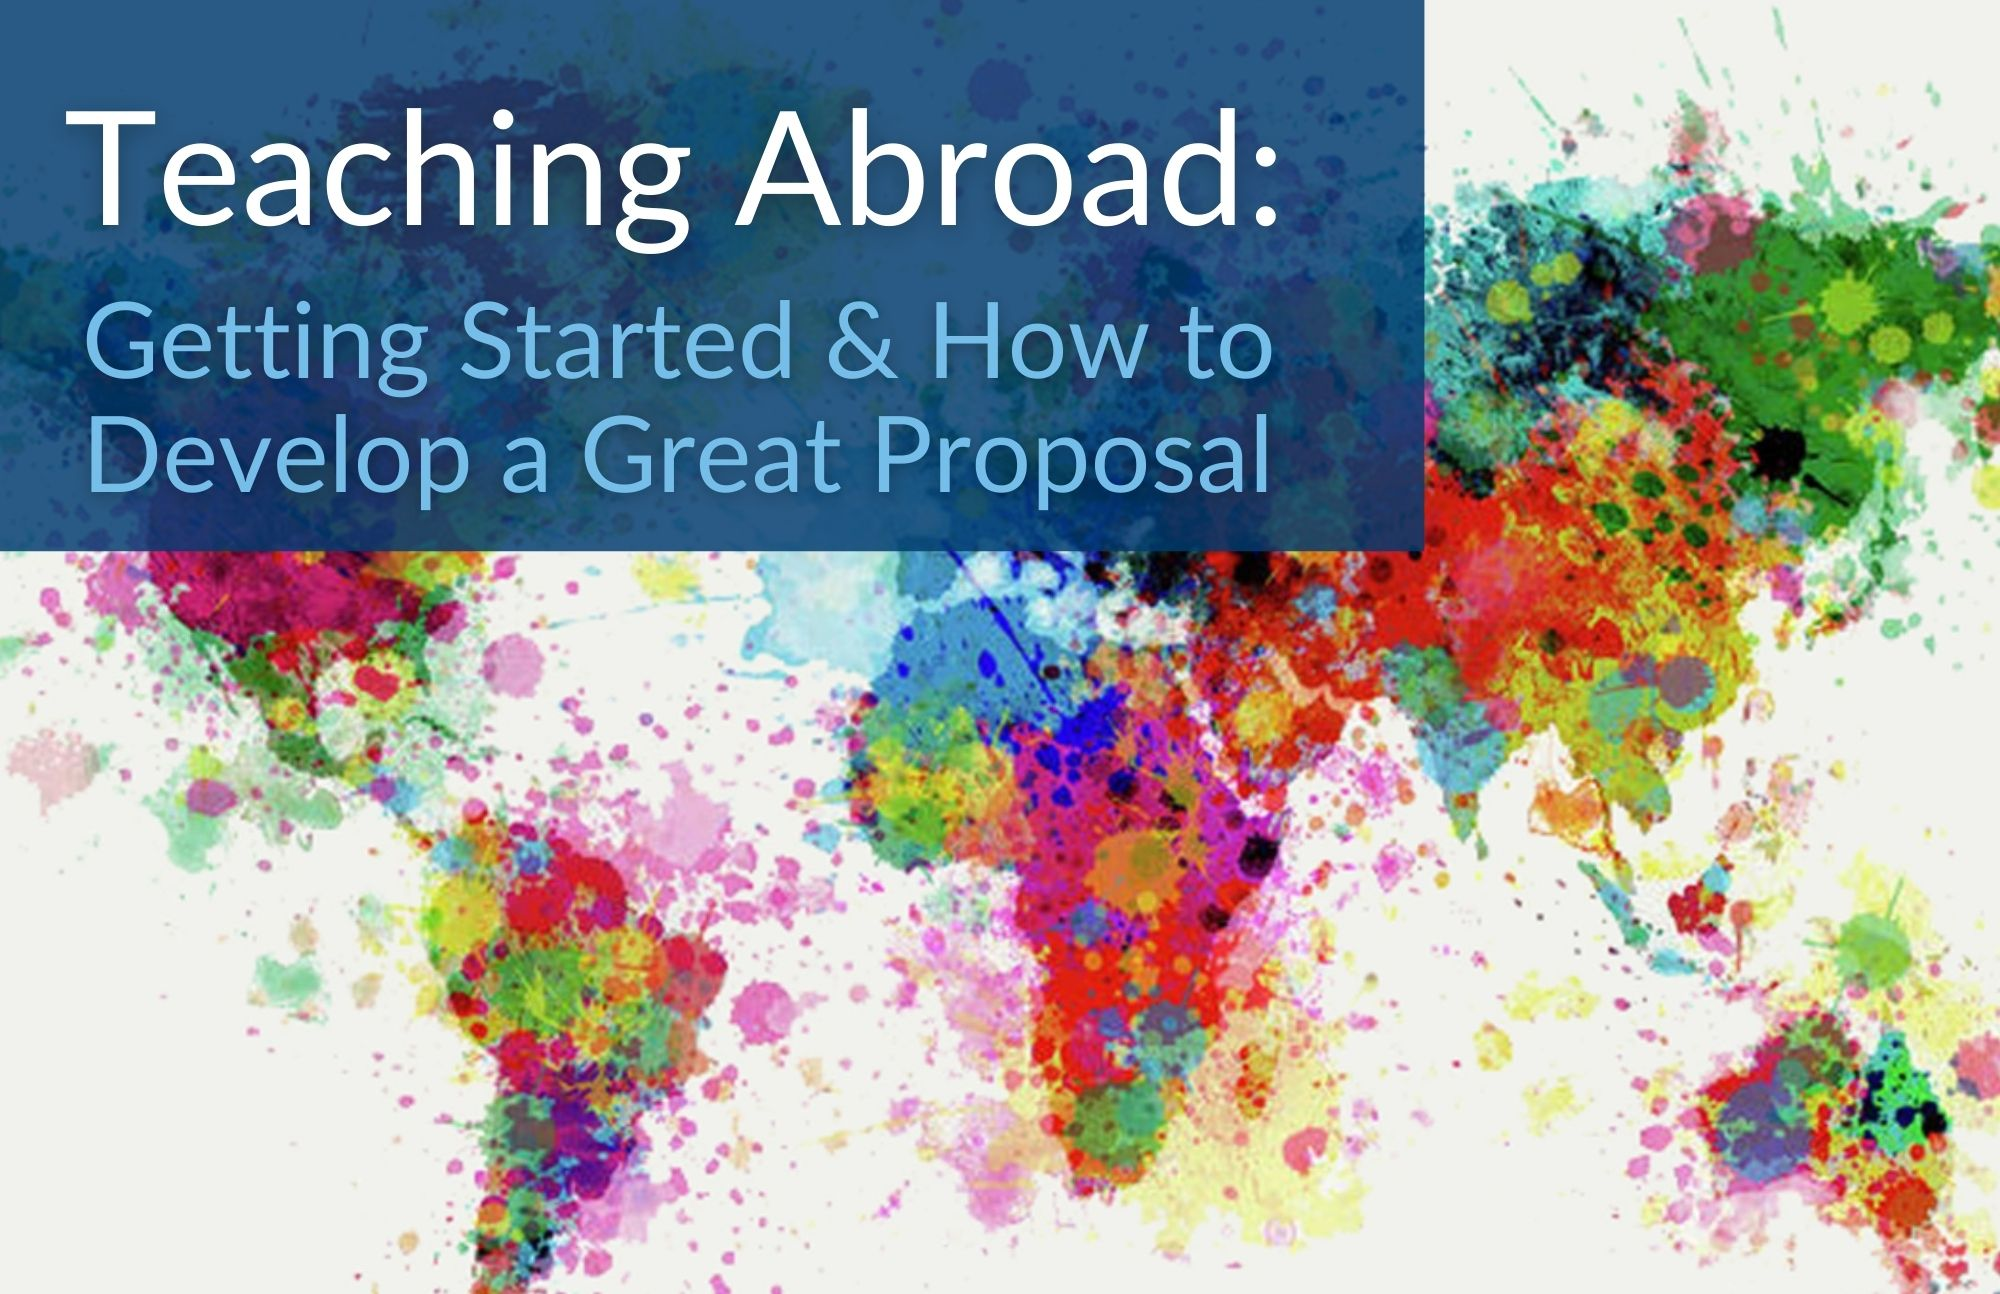 """background image of world map in watercolors with text that reads """"teaching abroad: getting started and how to develop a great proposal"""""""